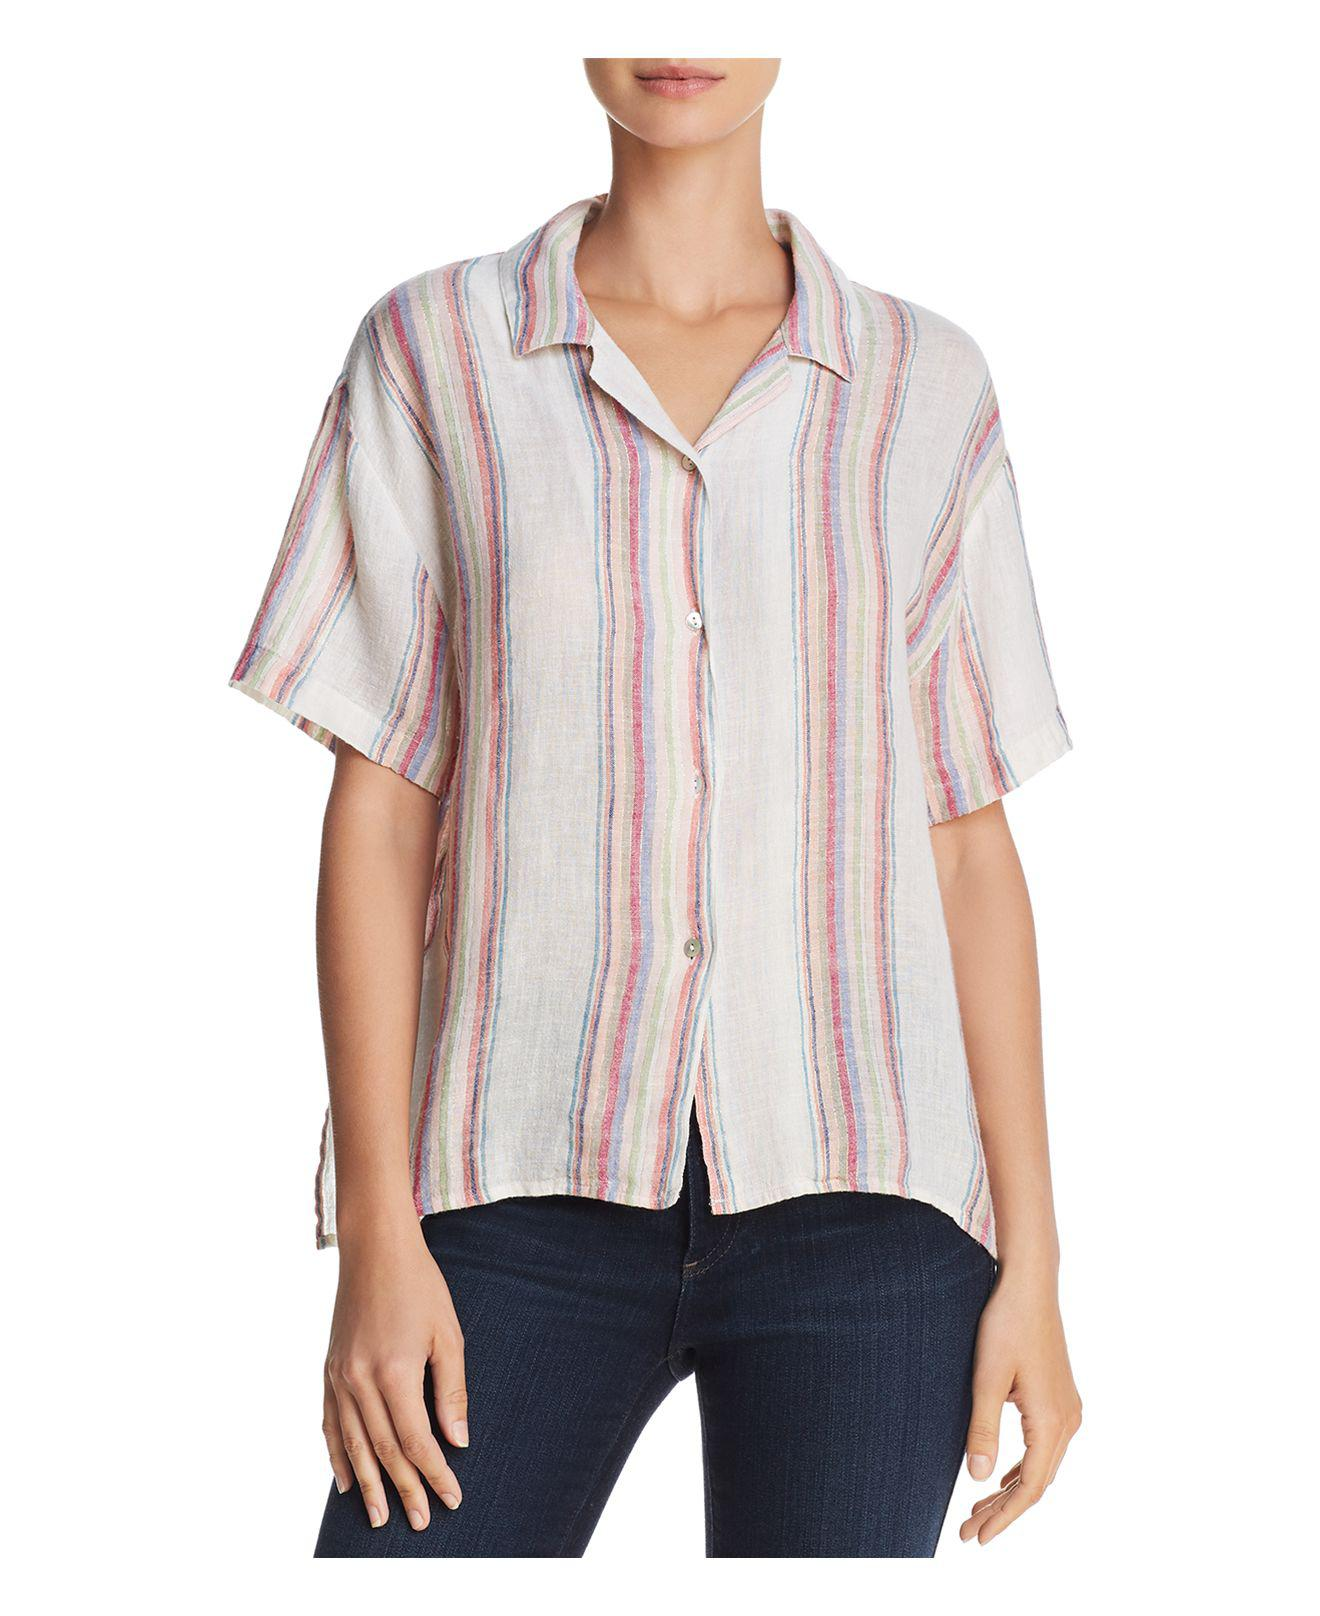 Lyst - Rails Zuma Metallic Striped Shirt